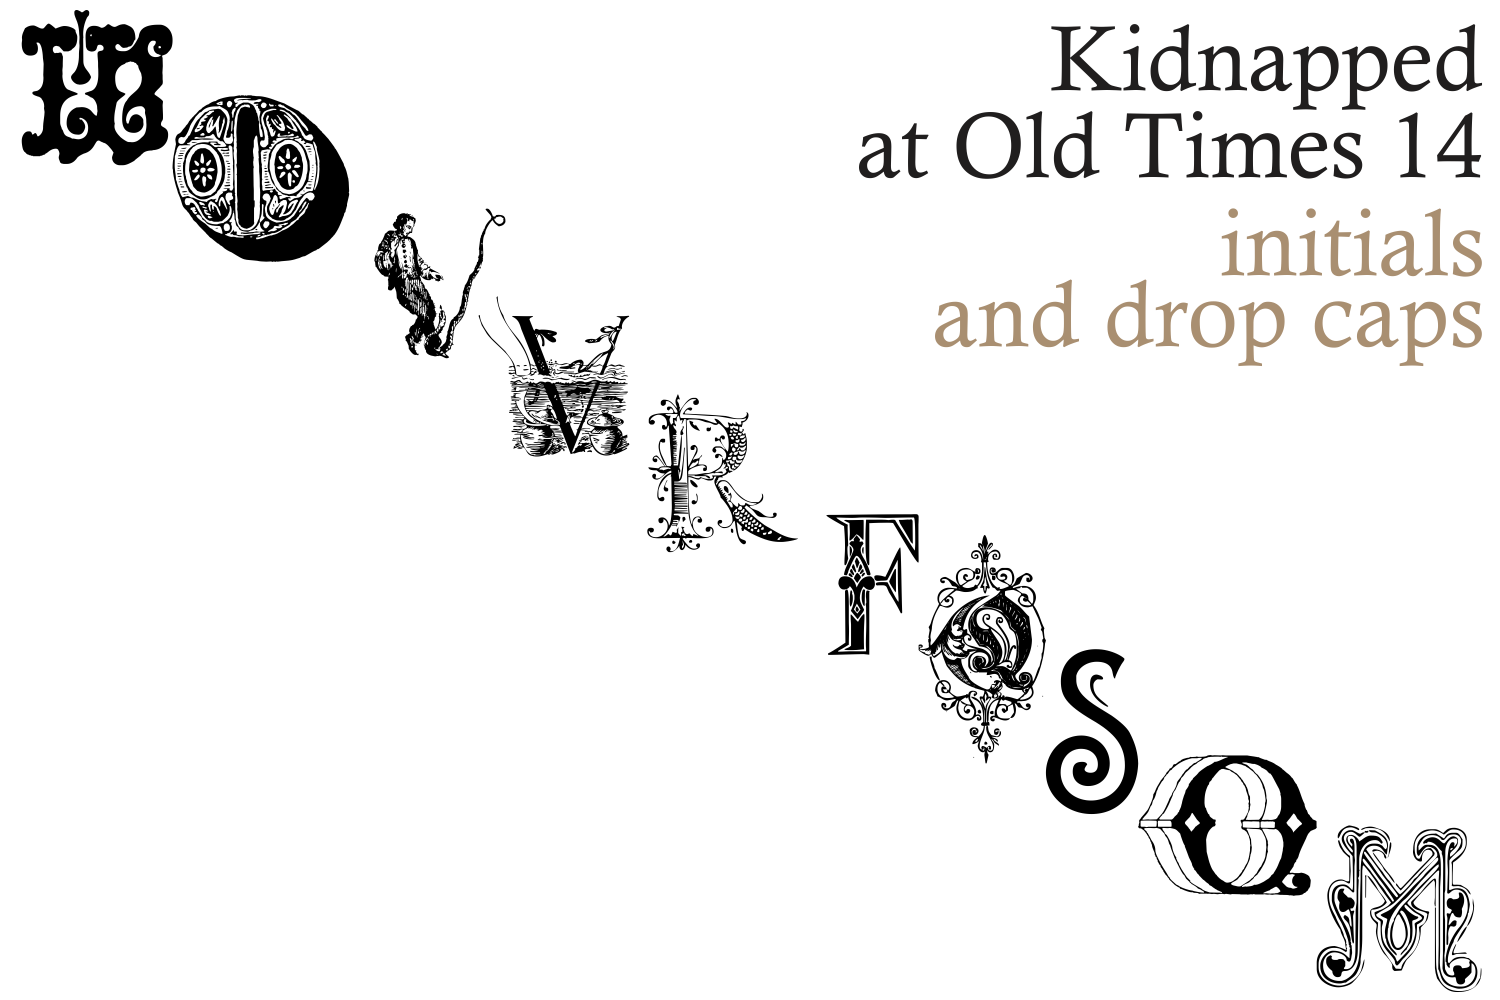 Kidnapped at Old Times 14 example image 1